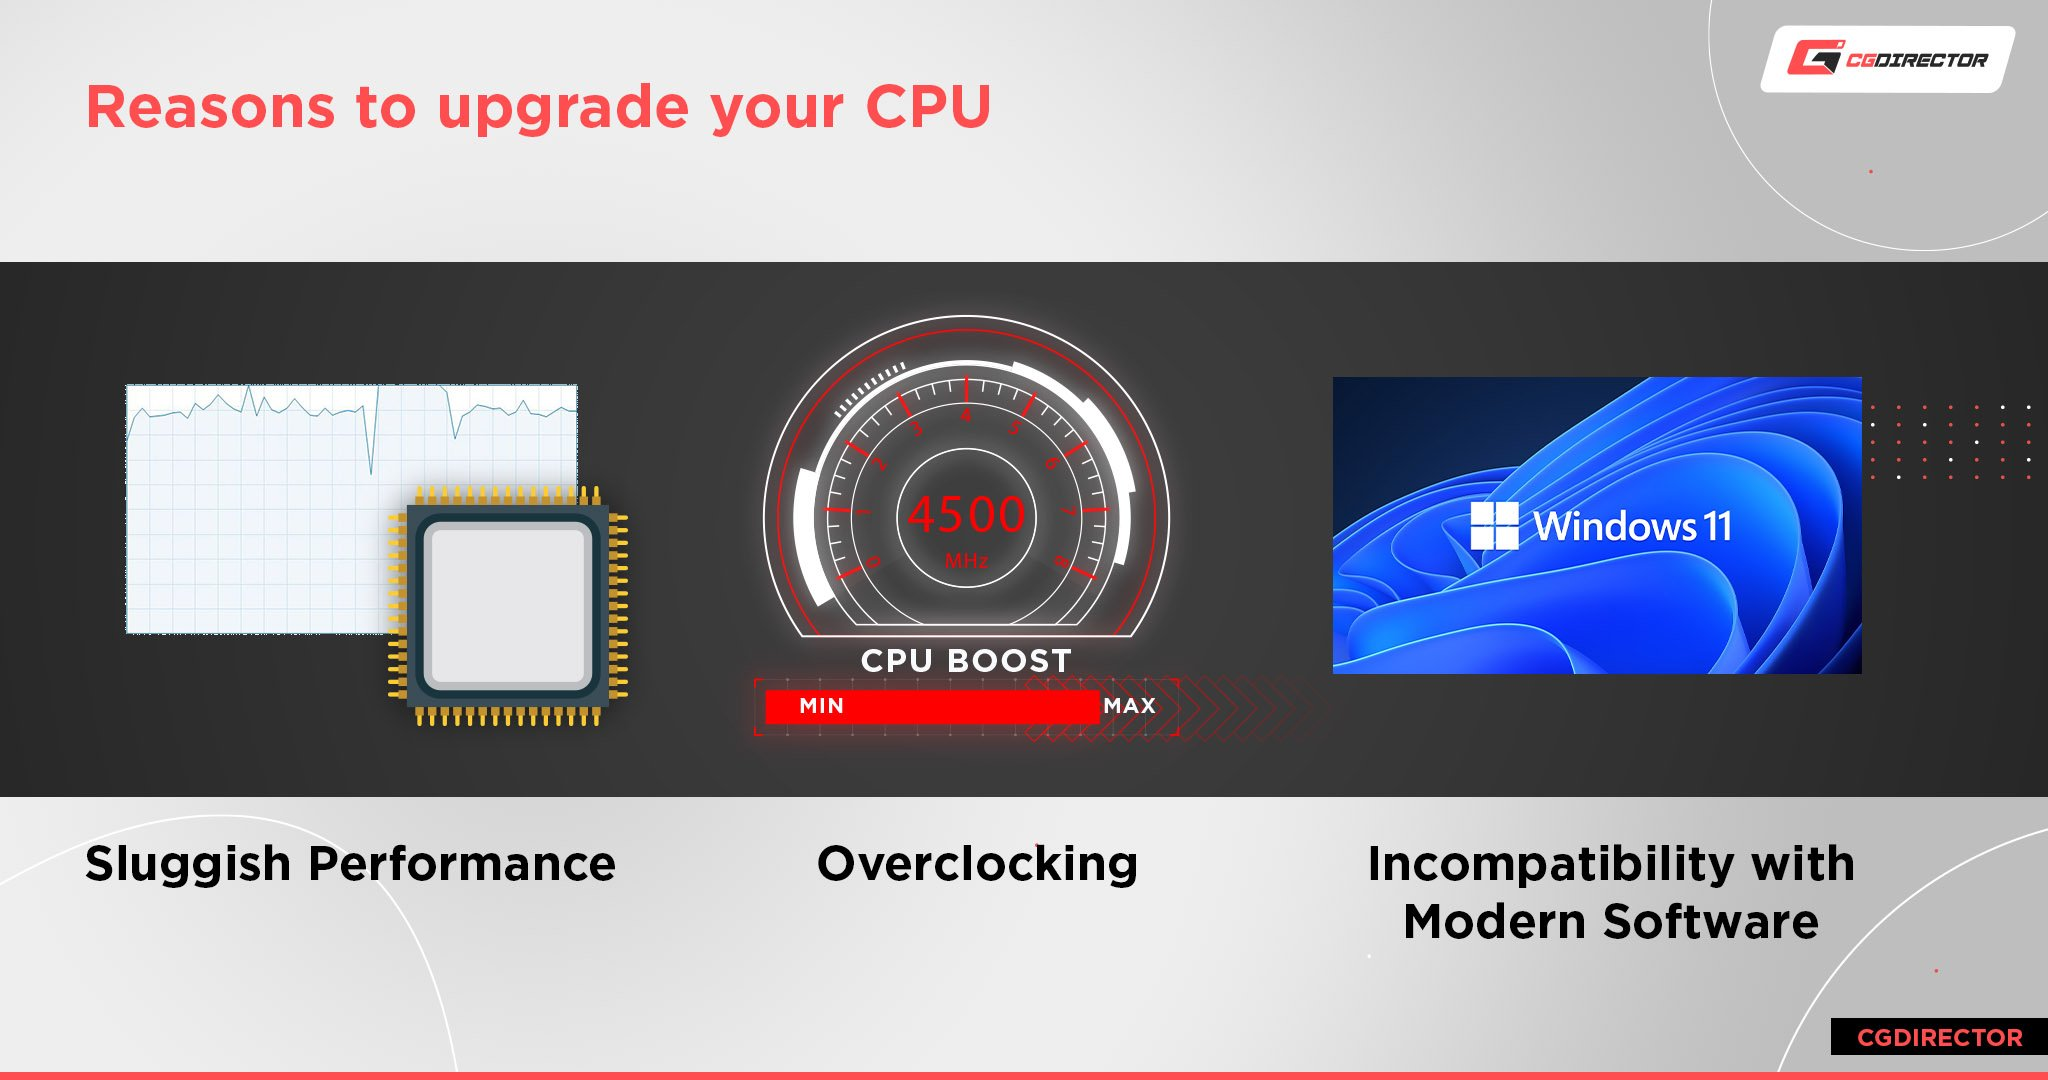 Reasons to upgrade your CPU